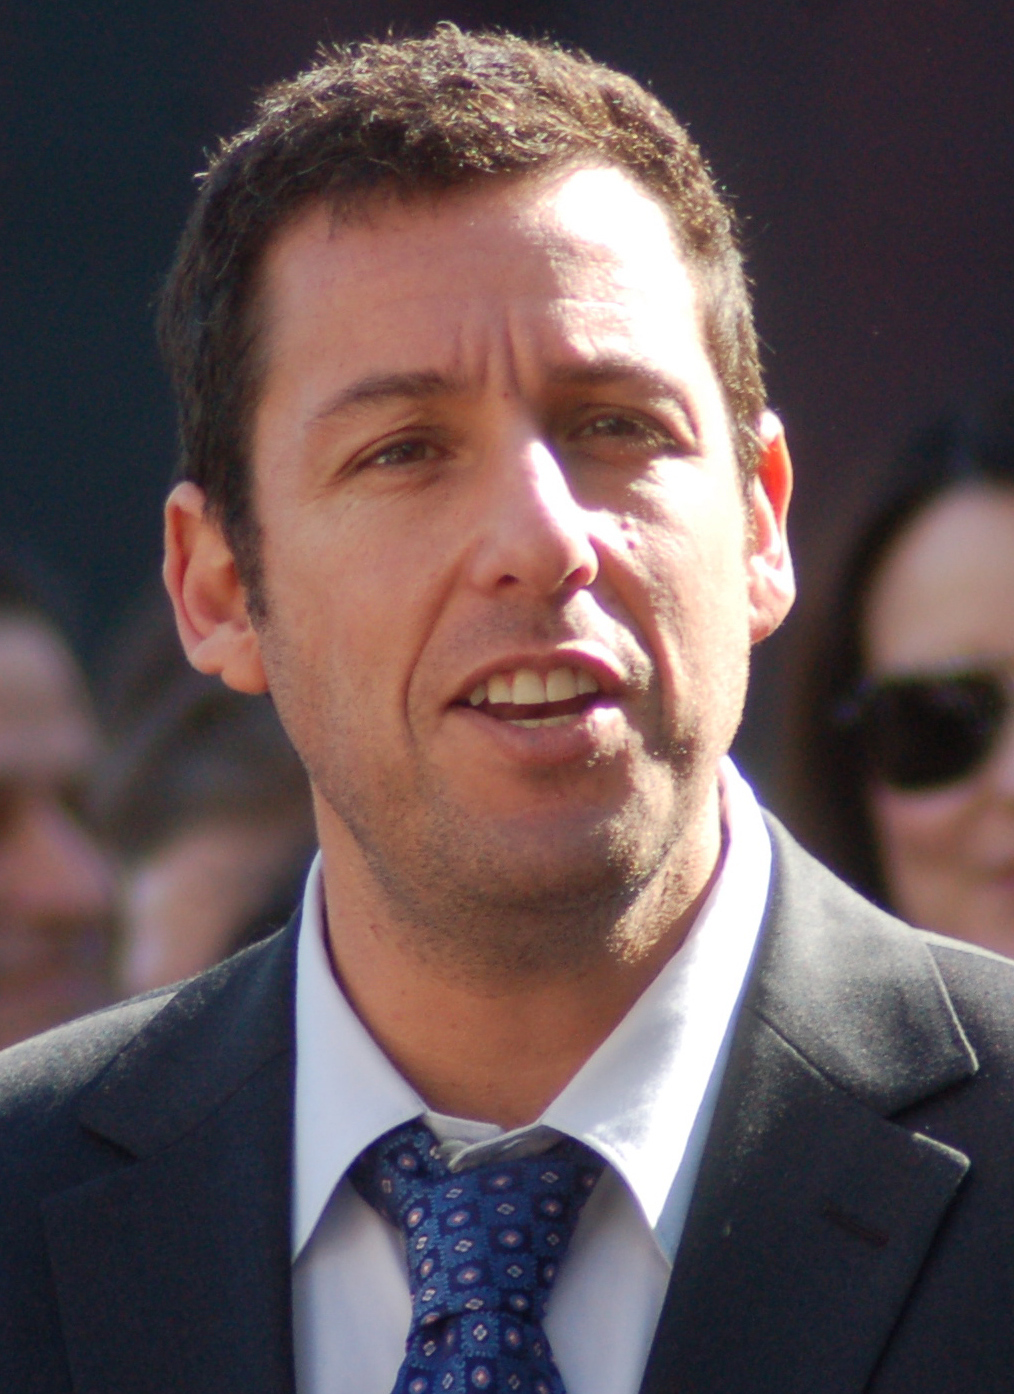 The 51-year old son of father Stanley Sandler and mother Judy Sandler, 177 cm tall Adam Sandler in 2018 photo